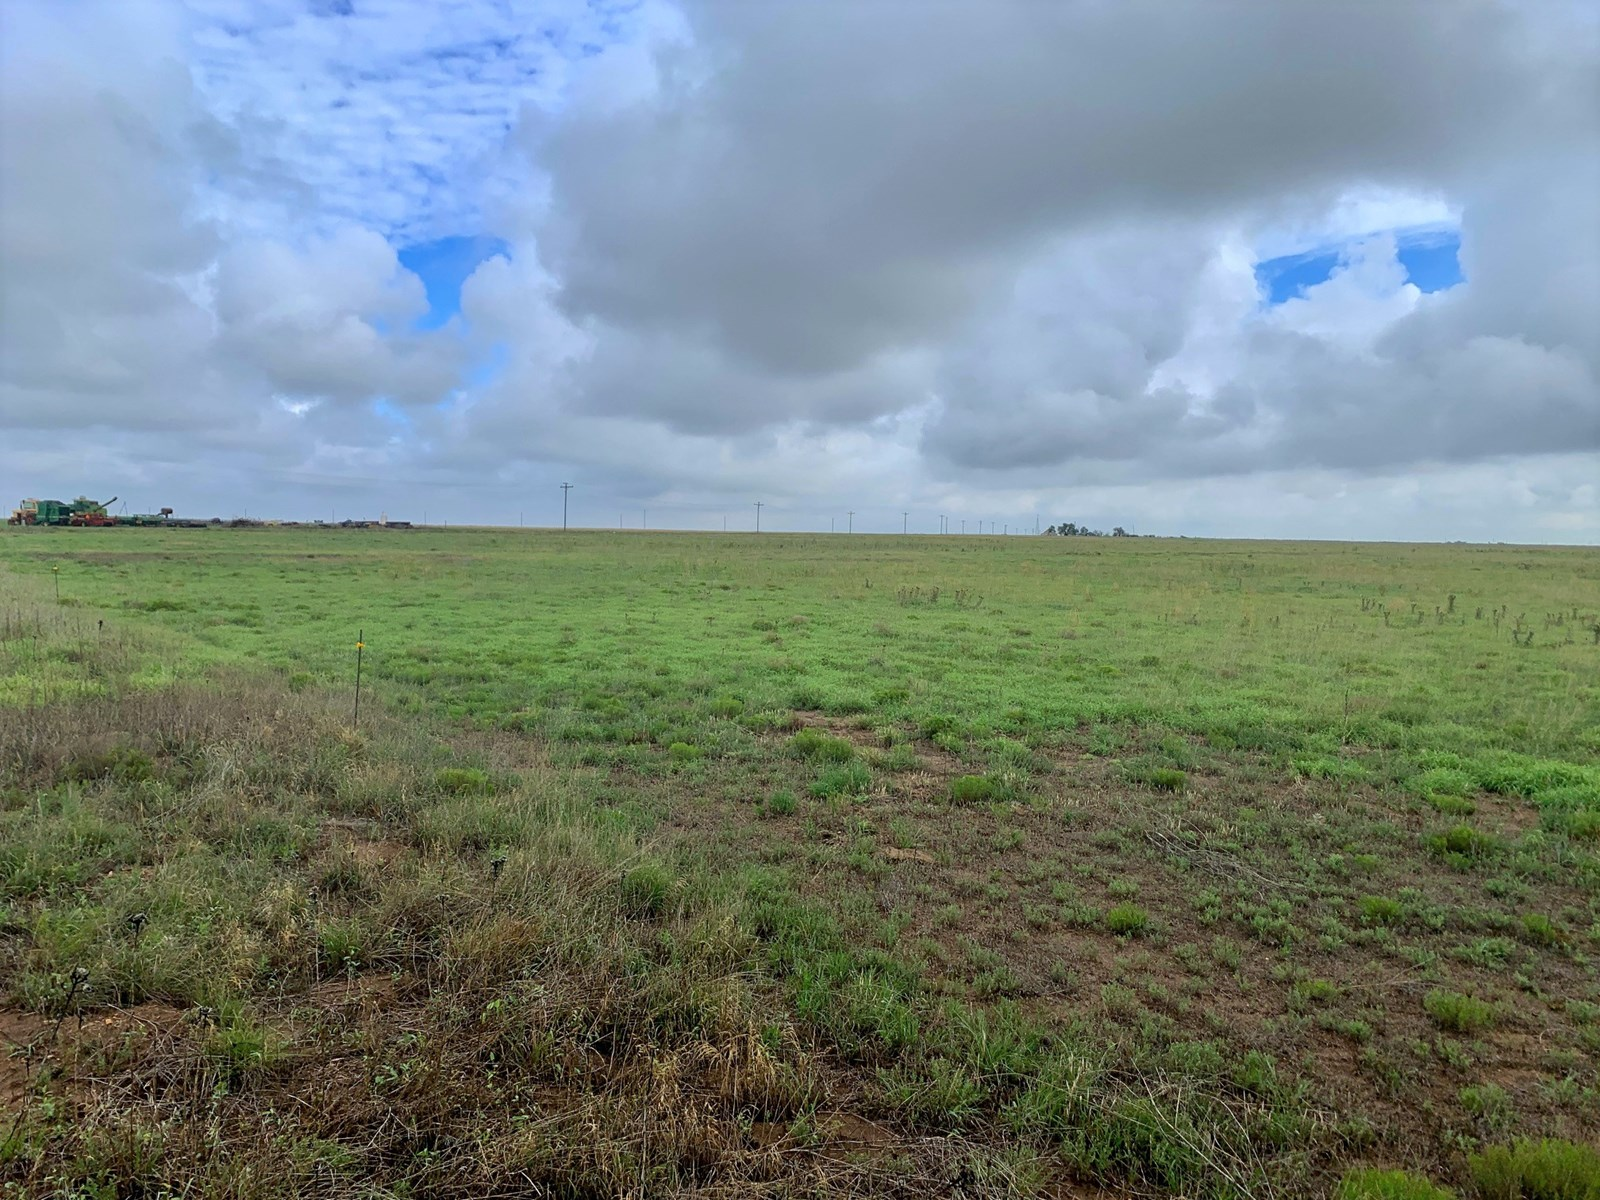 Texas County Farm, Ranch & Hunting Land for Sale 160 Acres